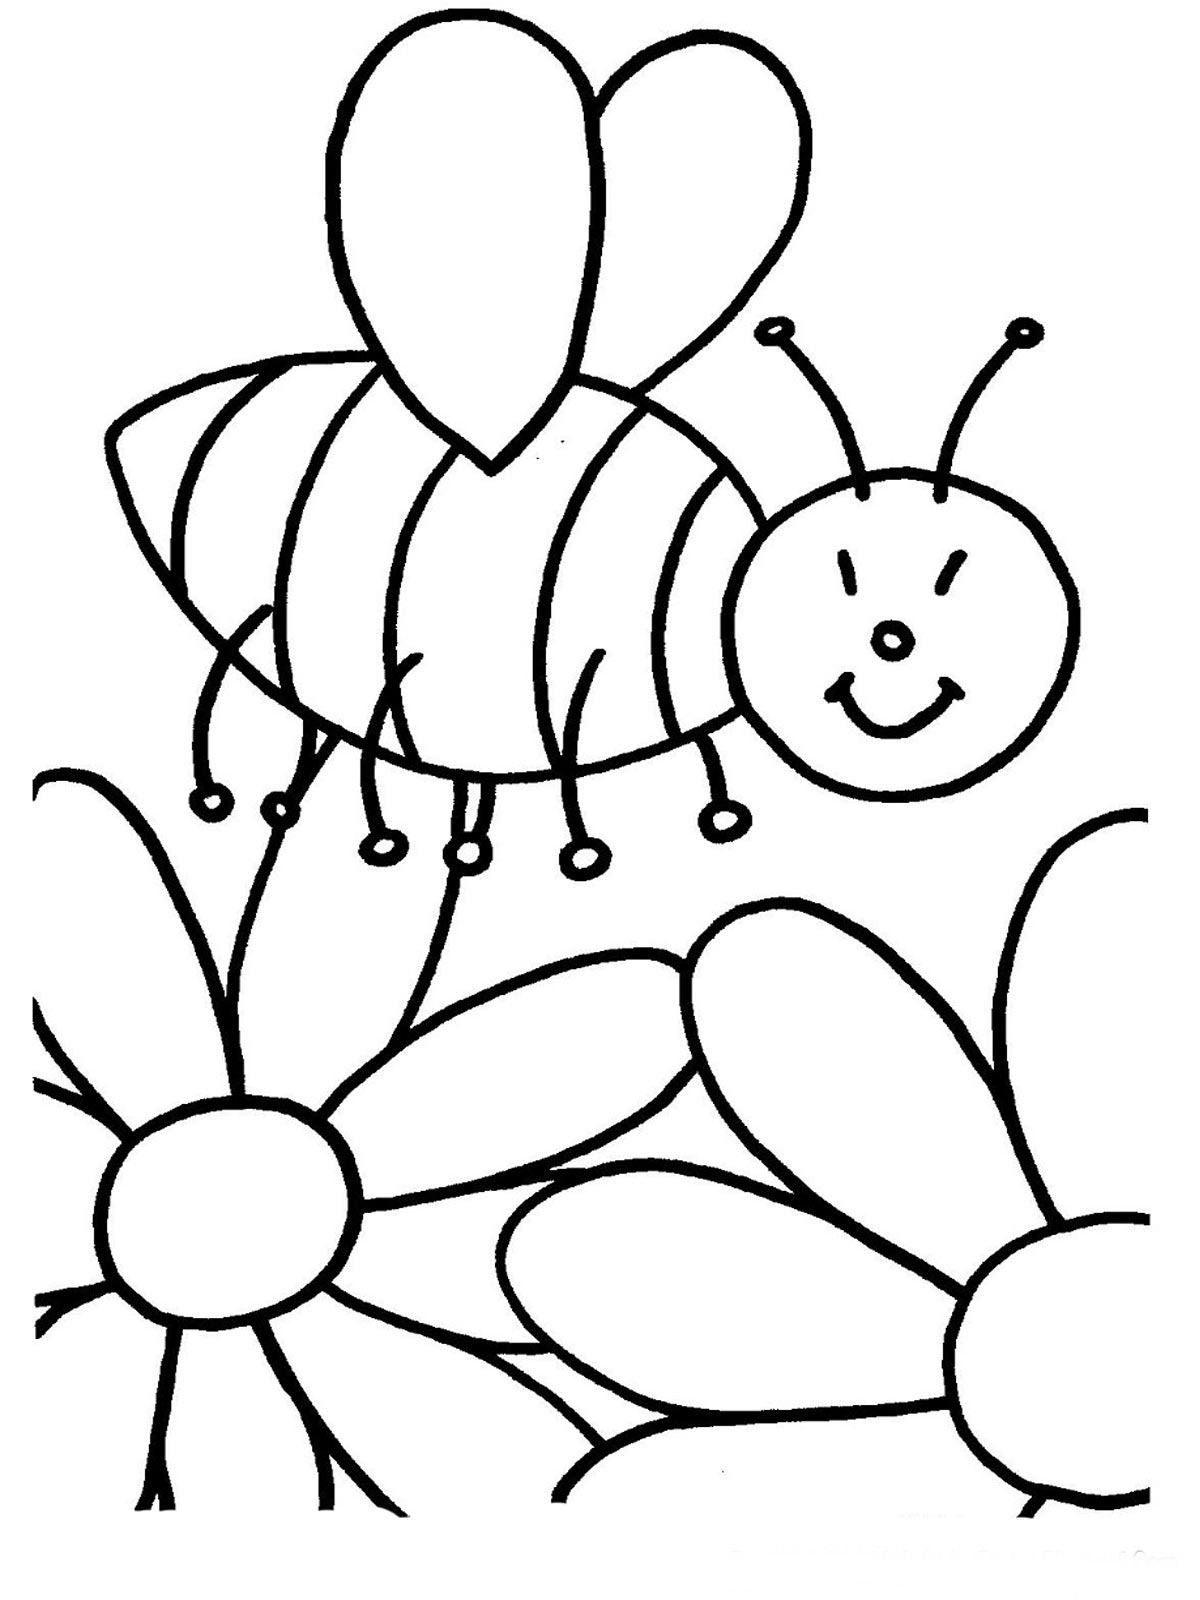 Kindergarten free colouring worksheets - Spring Flowering Bee Free Printable Coloring Pages Spring Flowering Bee Free Printable Coloring Pages